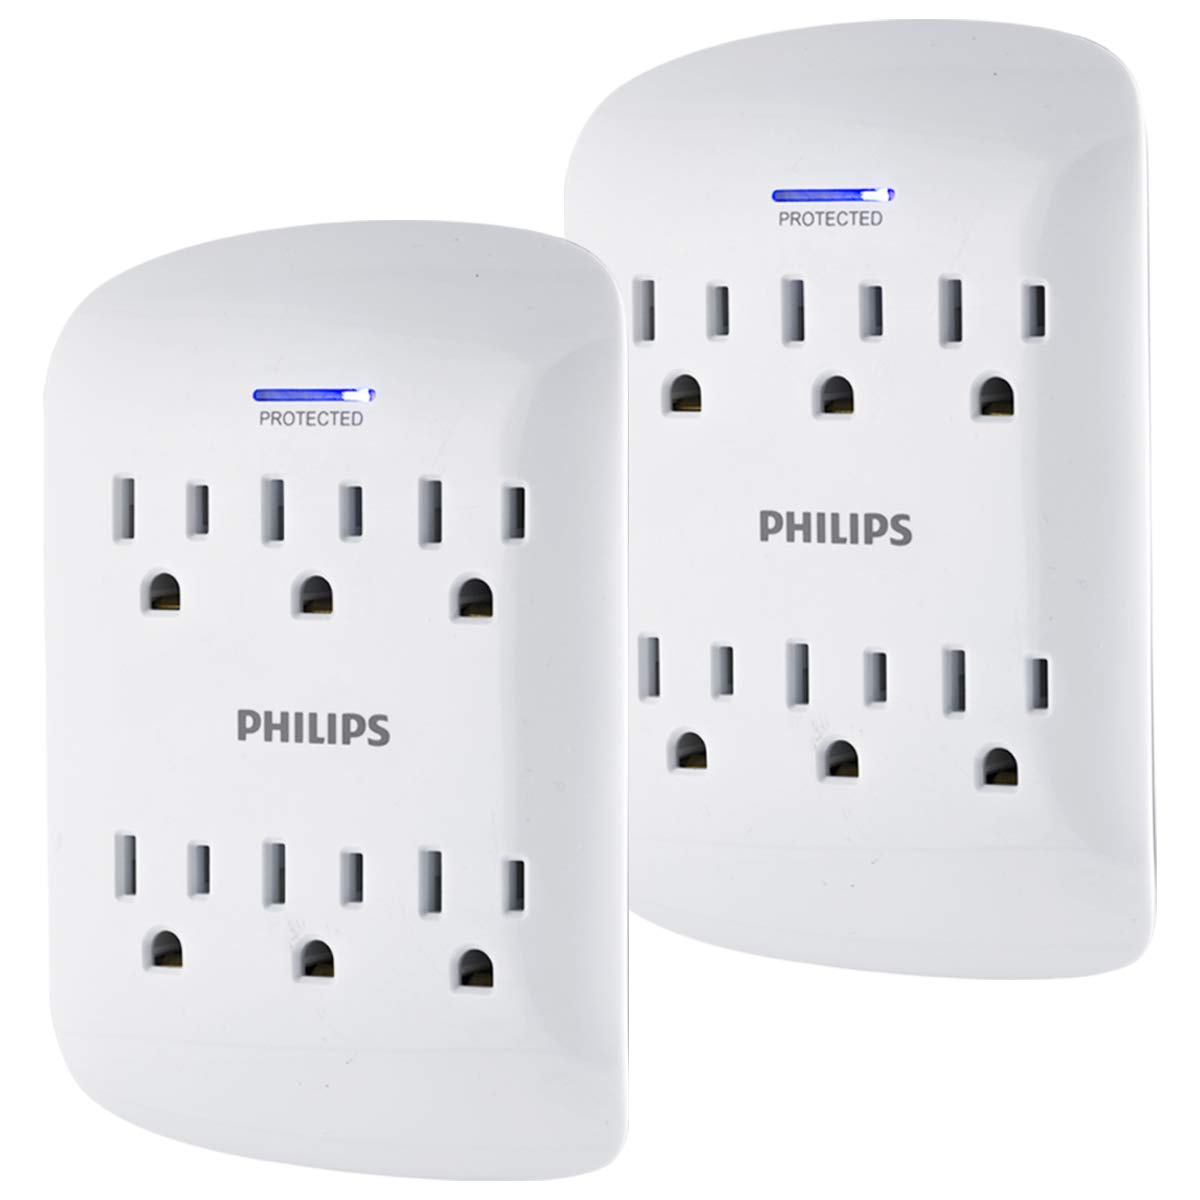 PHILIPS Surge Protector Tap, 6-Outlet